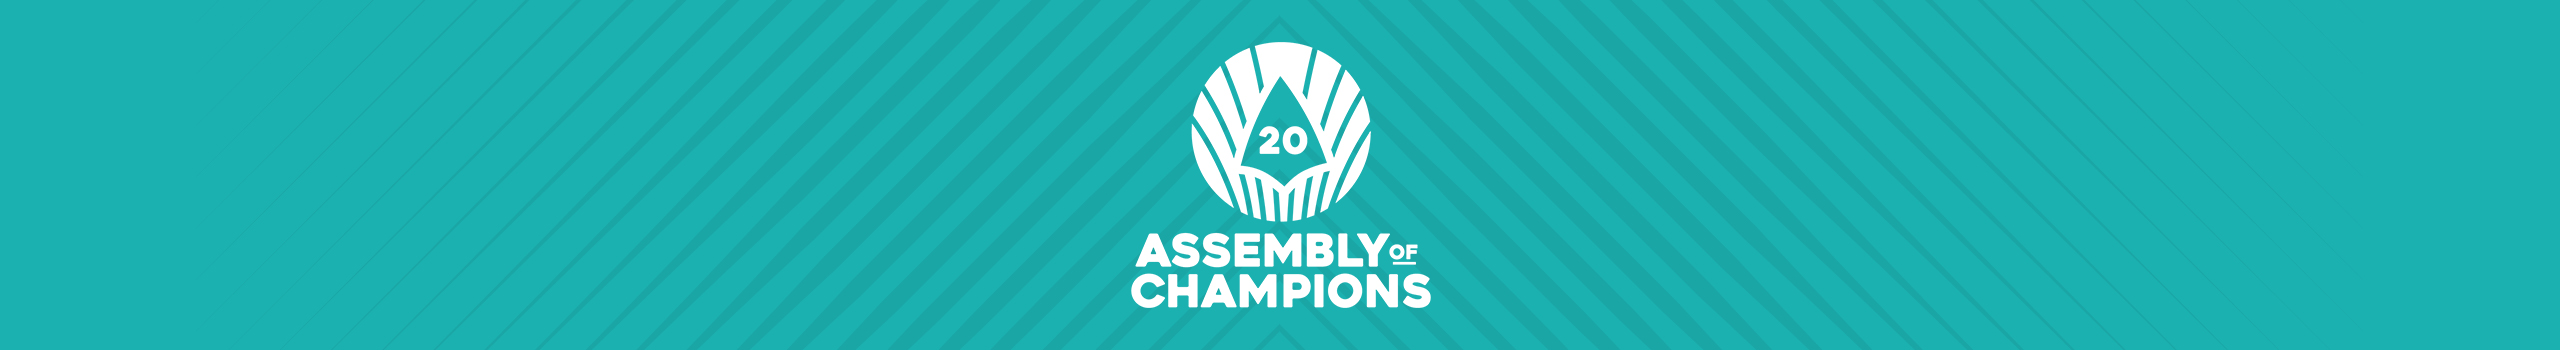 assembly-of-champions